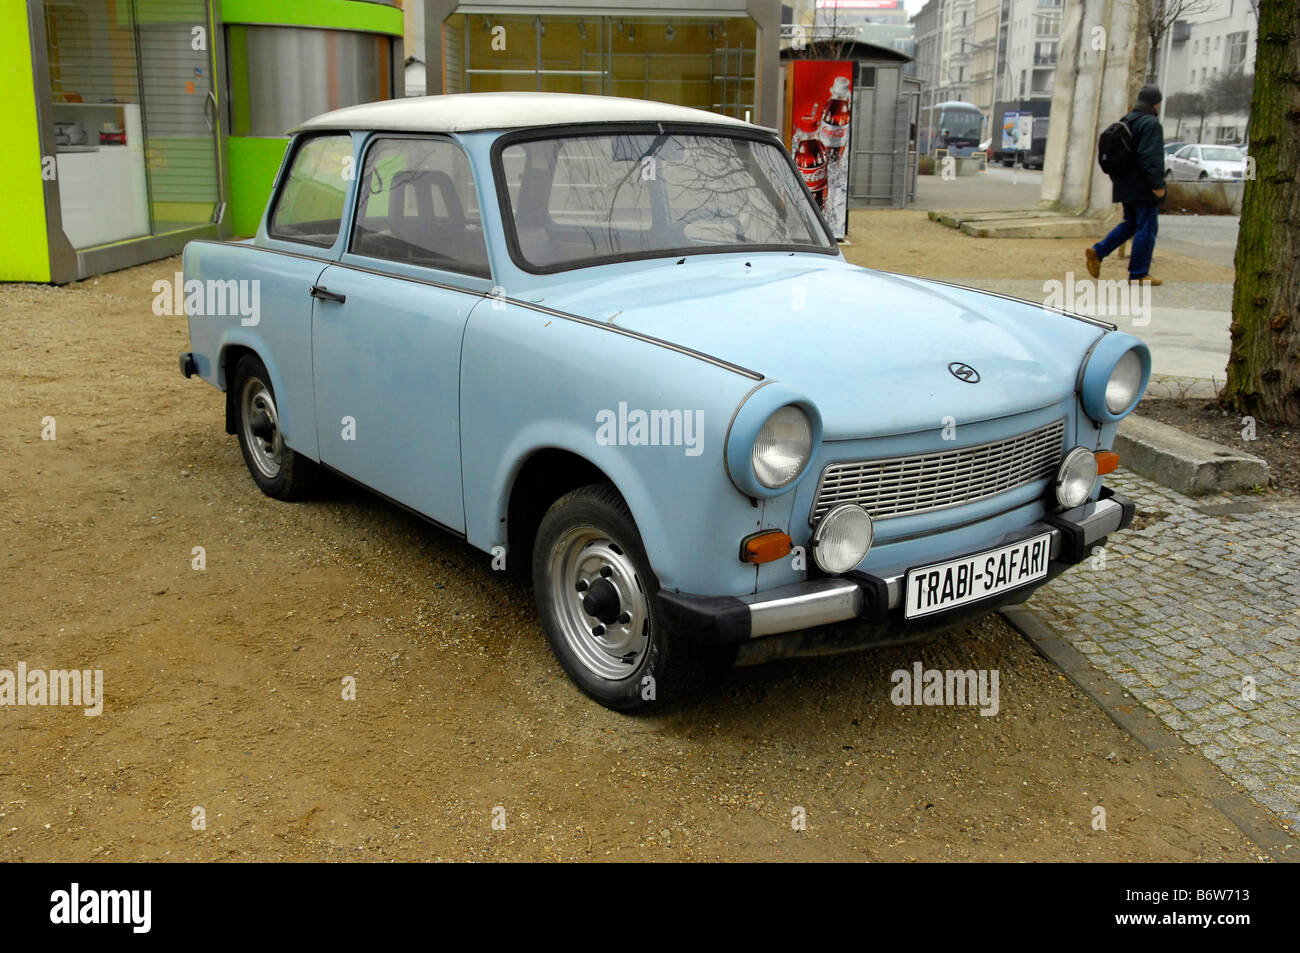 Trabant Berlin East German Motor Car Communist Soviet Travel